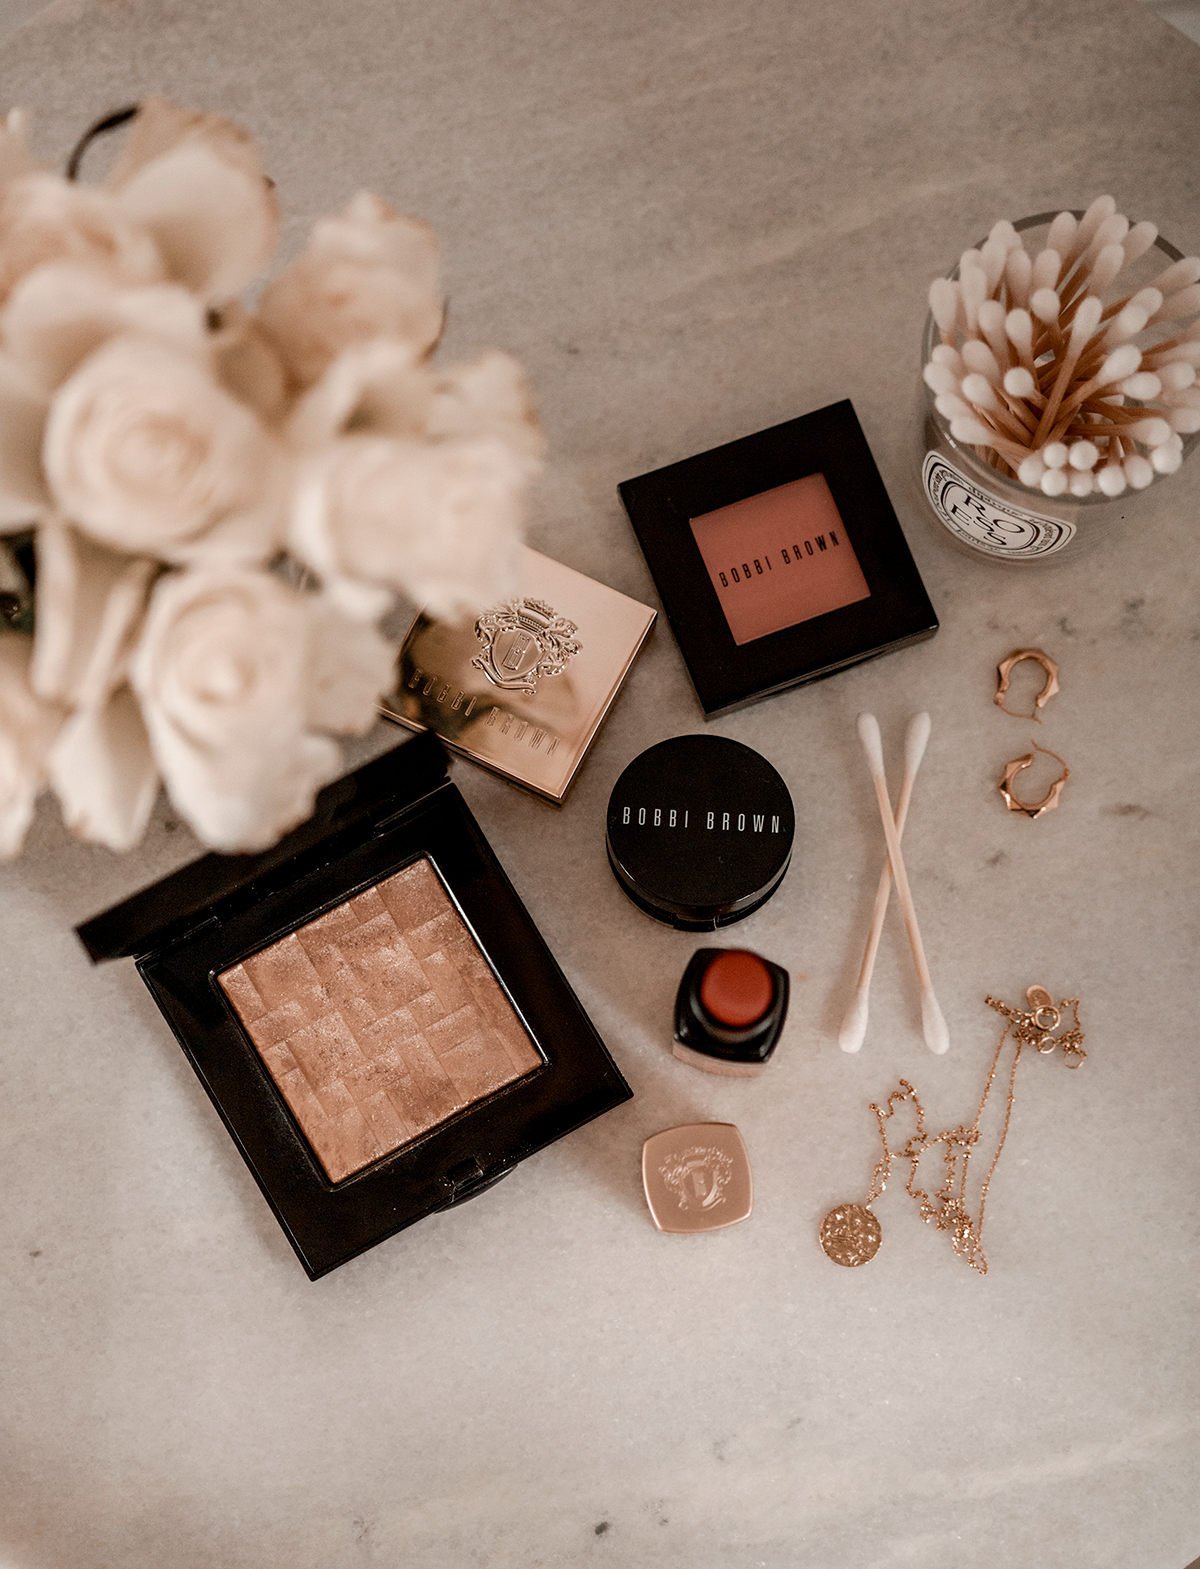 Bobbi Brown Review Blush Highlight Sparkle Eyeshadow